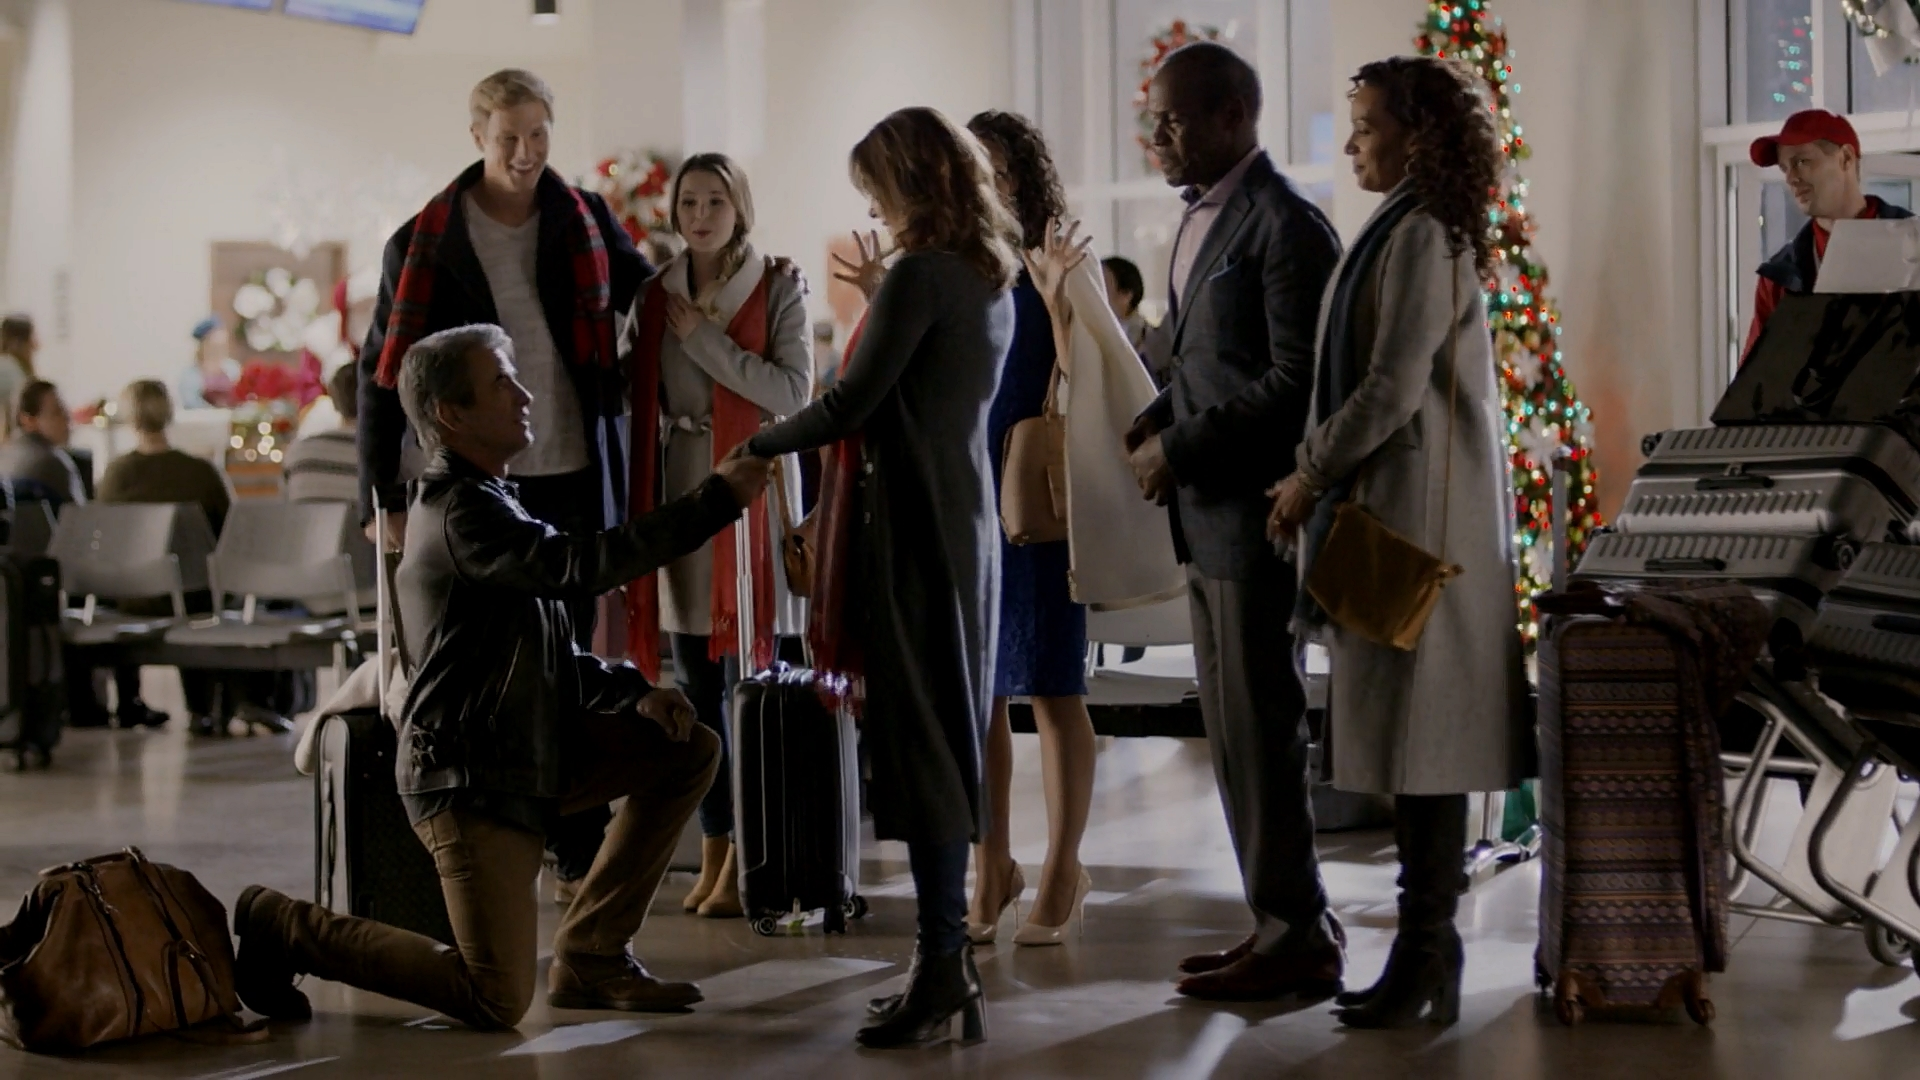 Danny Glover, Dermot Mulroney, Kirsten Zien, and Kimberly Williams-Paisley in The Christmas Train (2017)